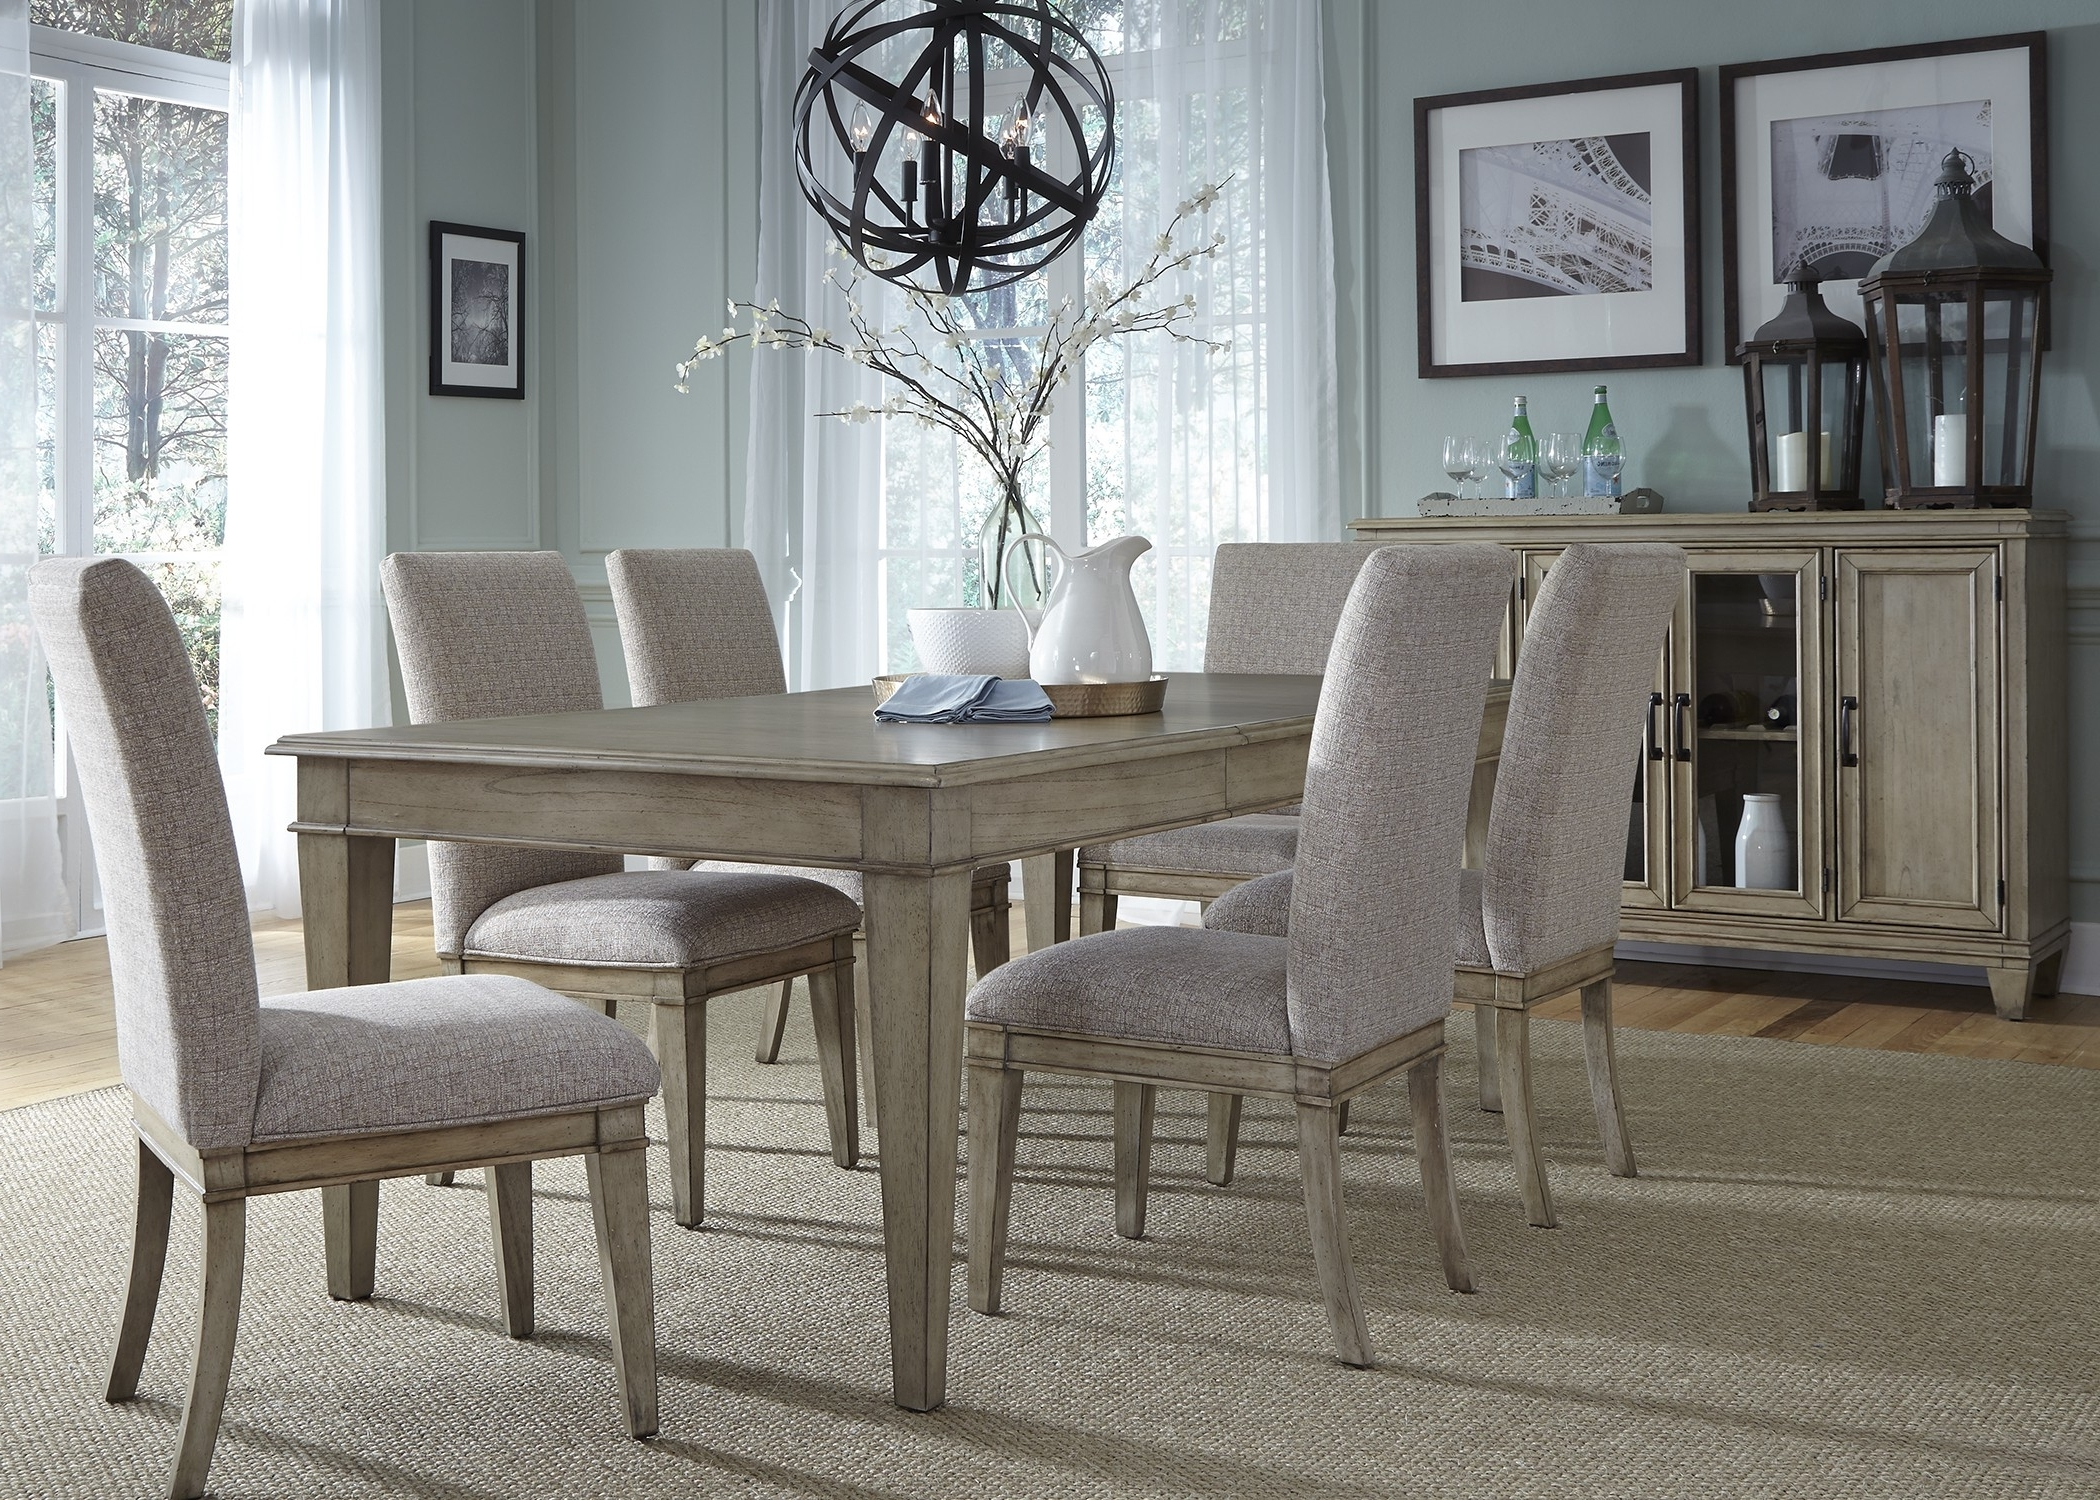 Jaxon 7 Piece Rectangle Dining Sets With Upholstered Chairs With Regard To Best And Newest (View 12 of 25)